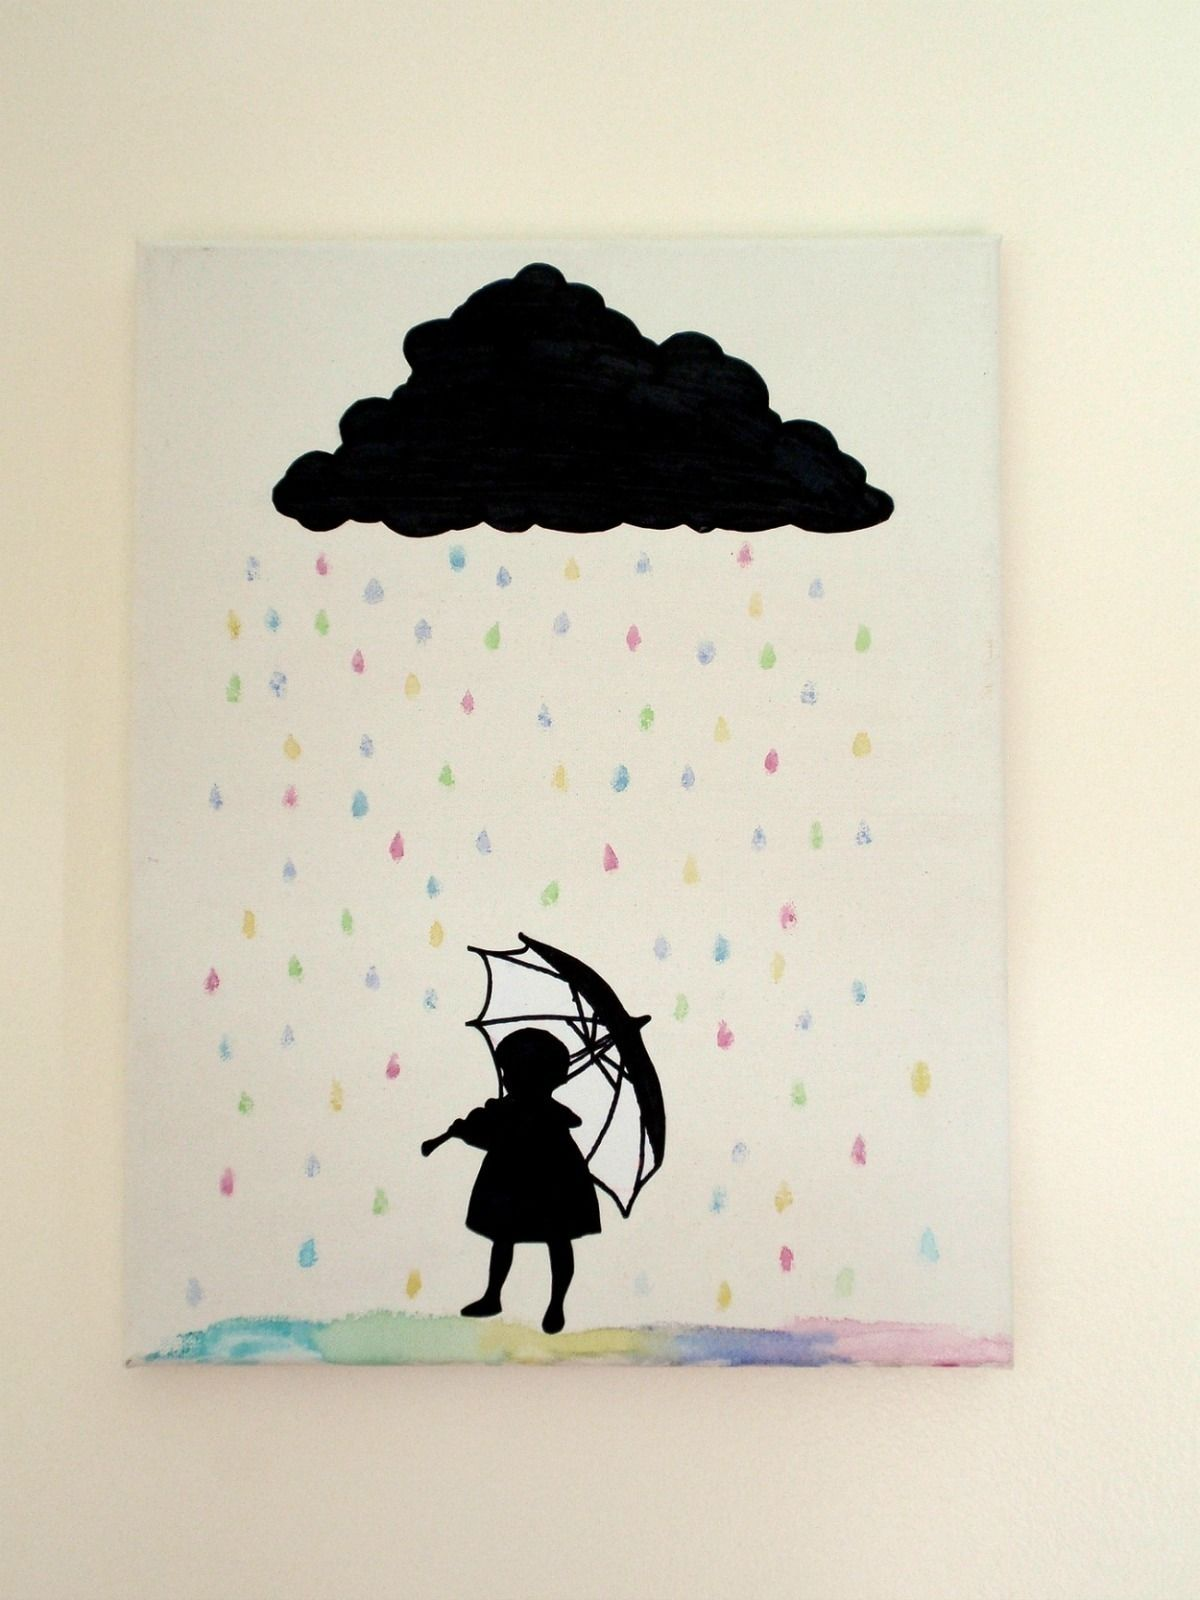 Silhouette Rain Cloud Canvas Art. I love this!